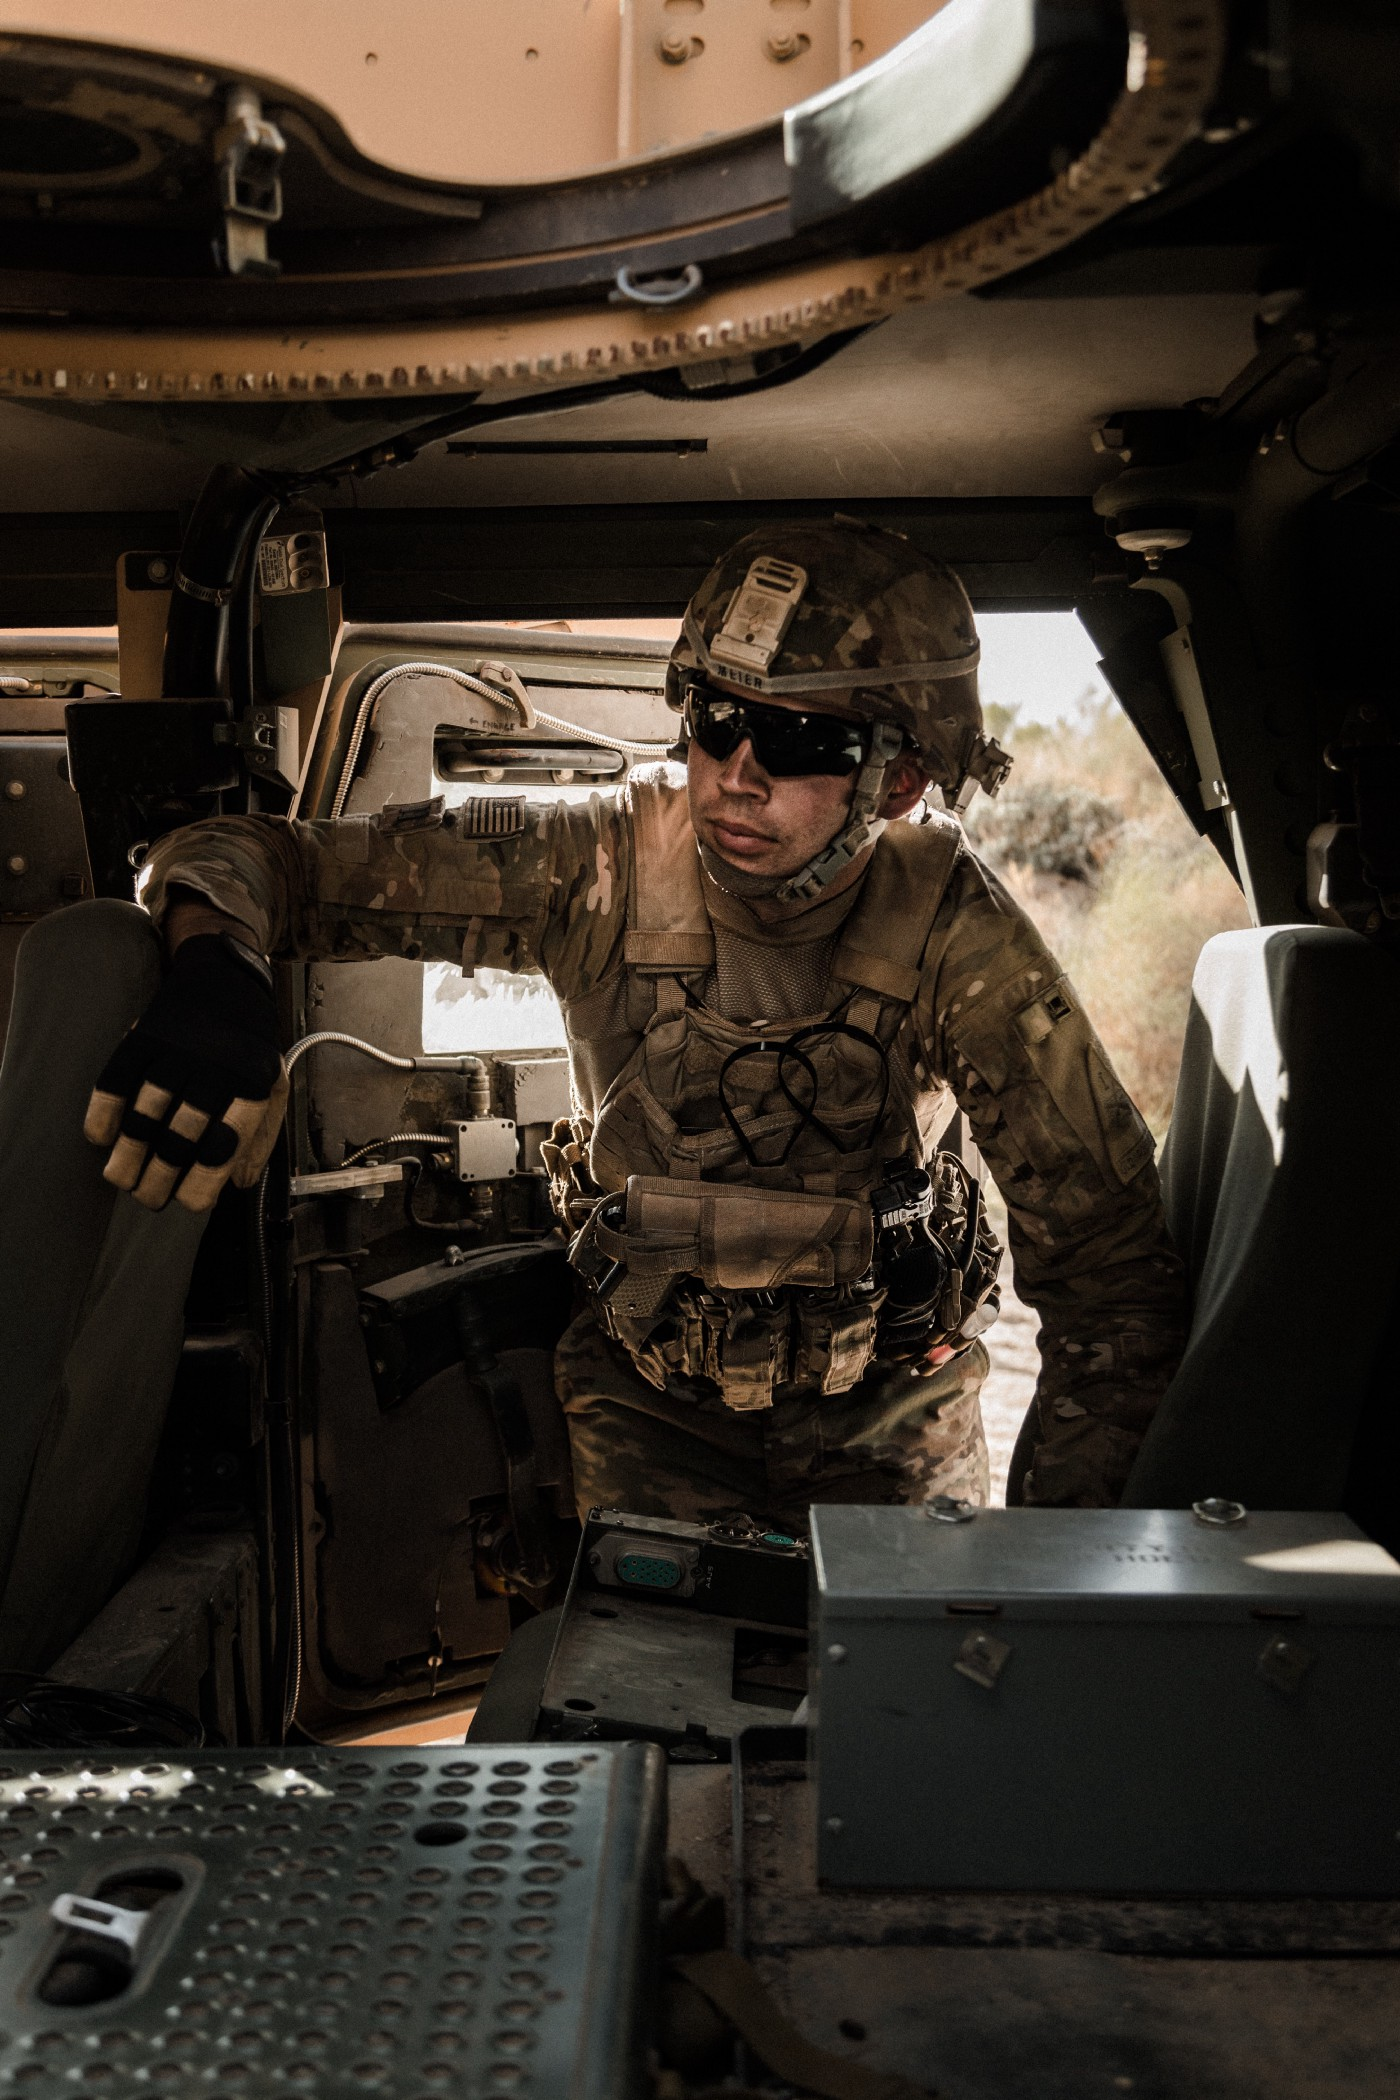 A soldier checking computers